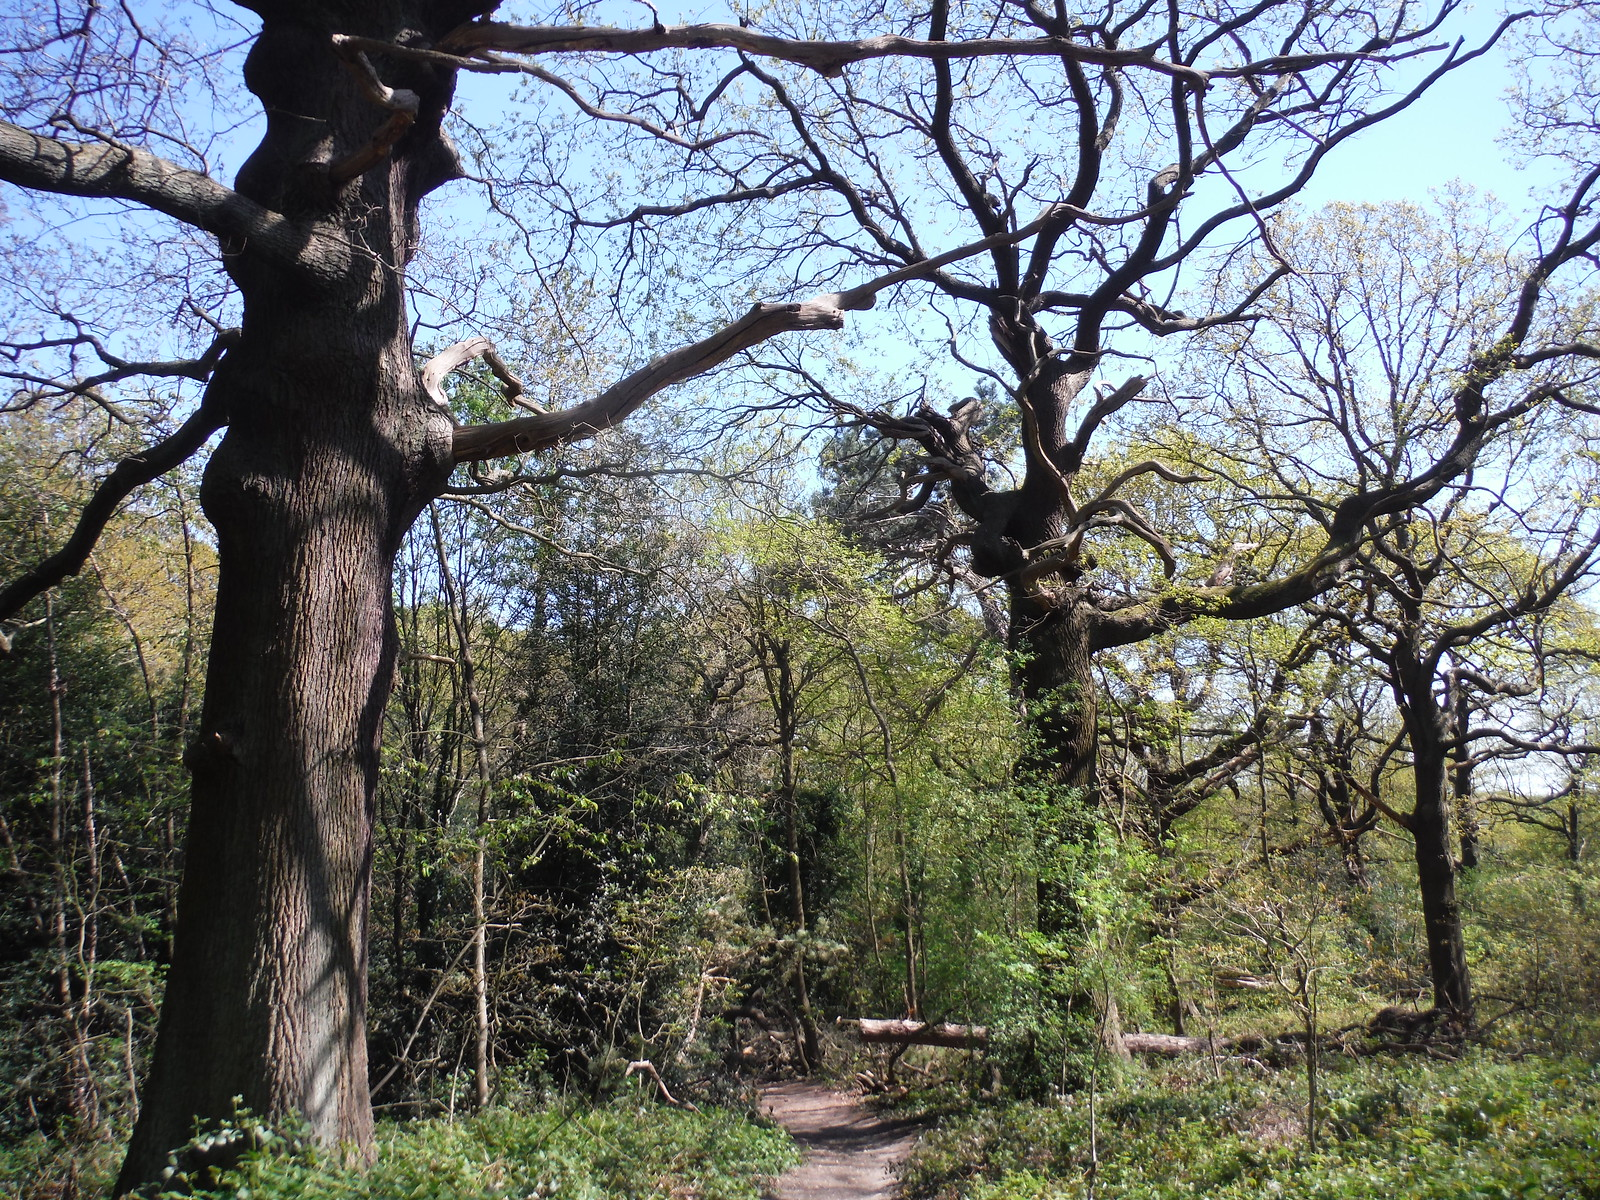 Jack Wood SWC Short Walk 44 - Oxleas Wood and Shooters Hill (Falconwood Circular)